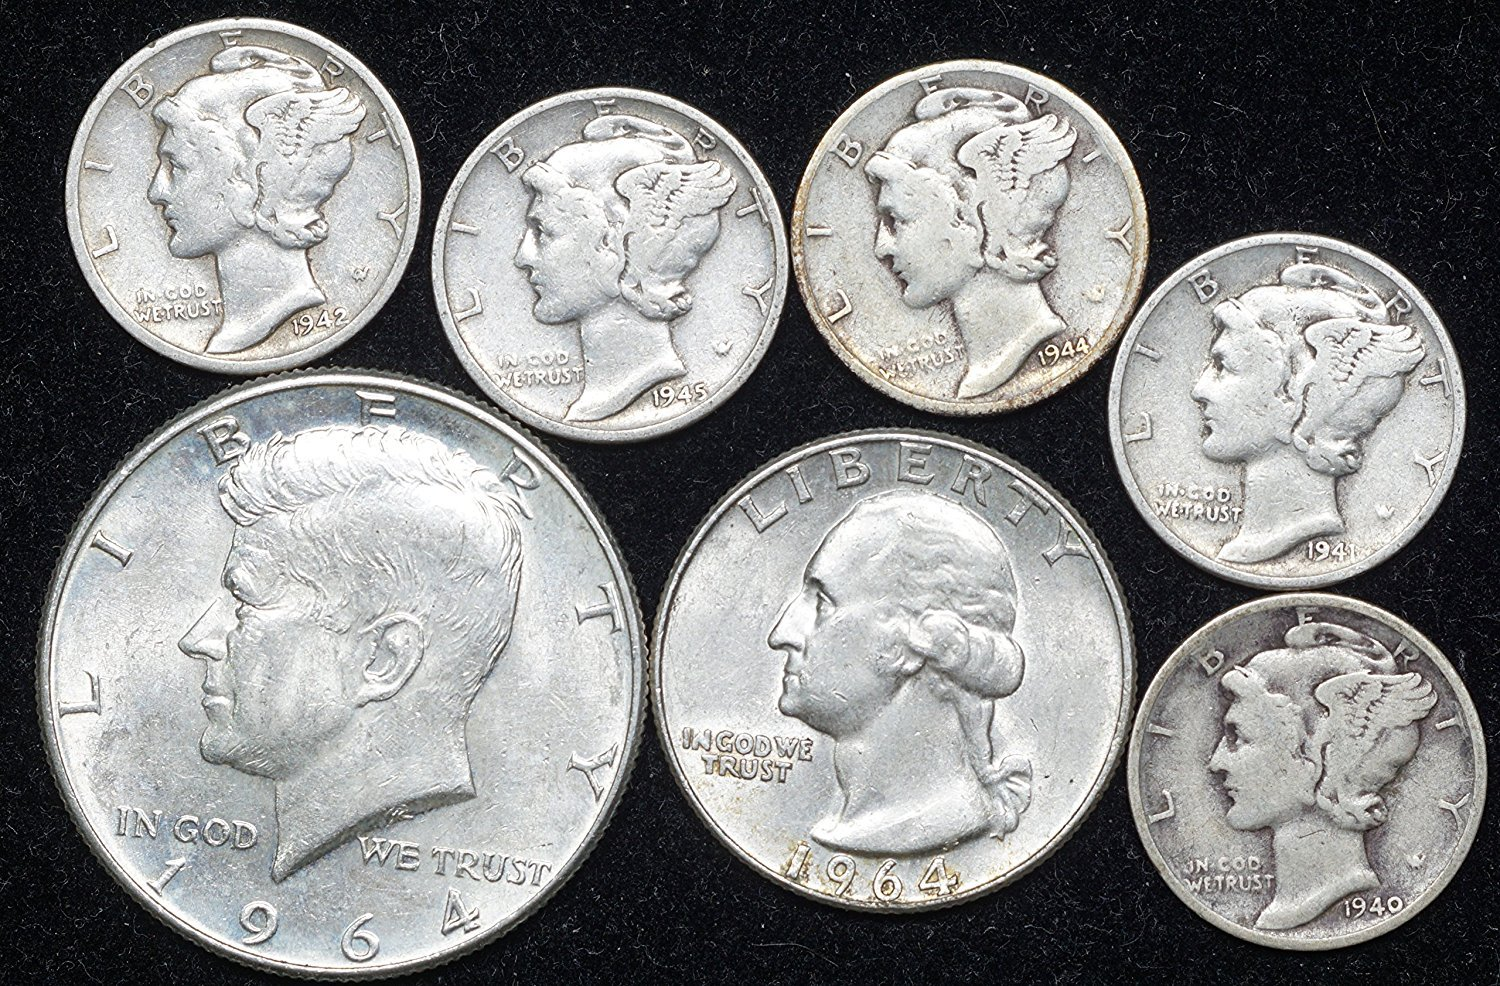 Lot of 10 Washington Silver Quarters From 1940s-1964 90/% Silver Coins